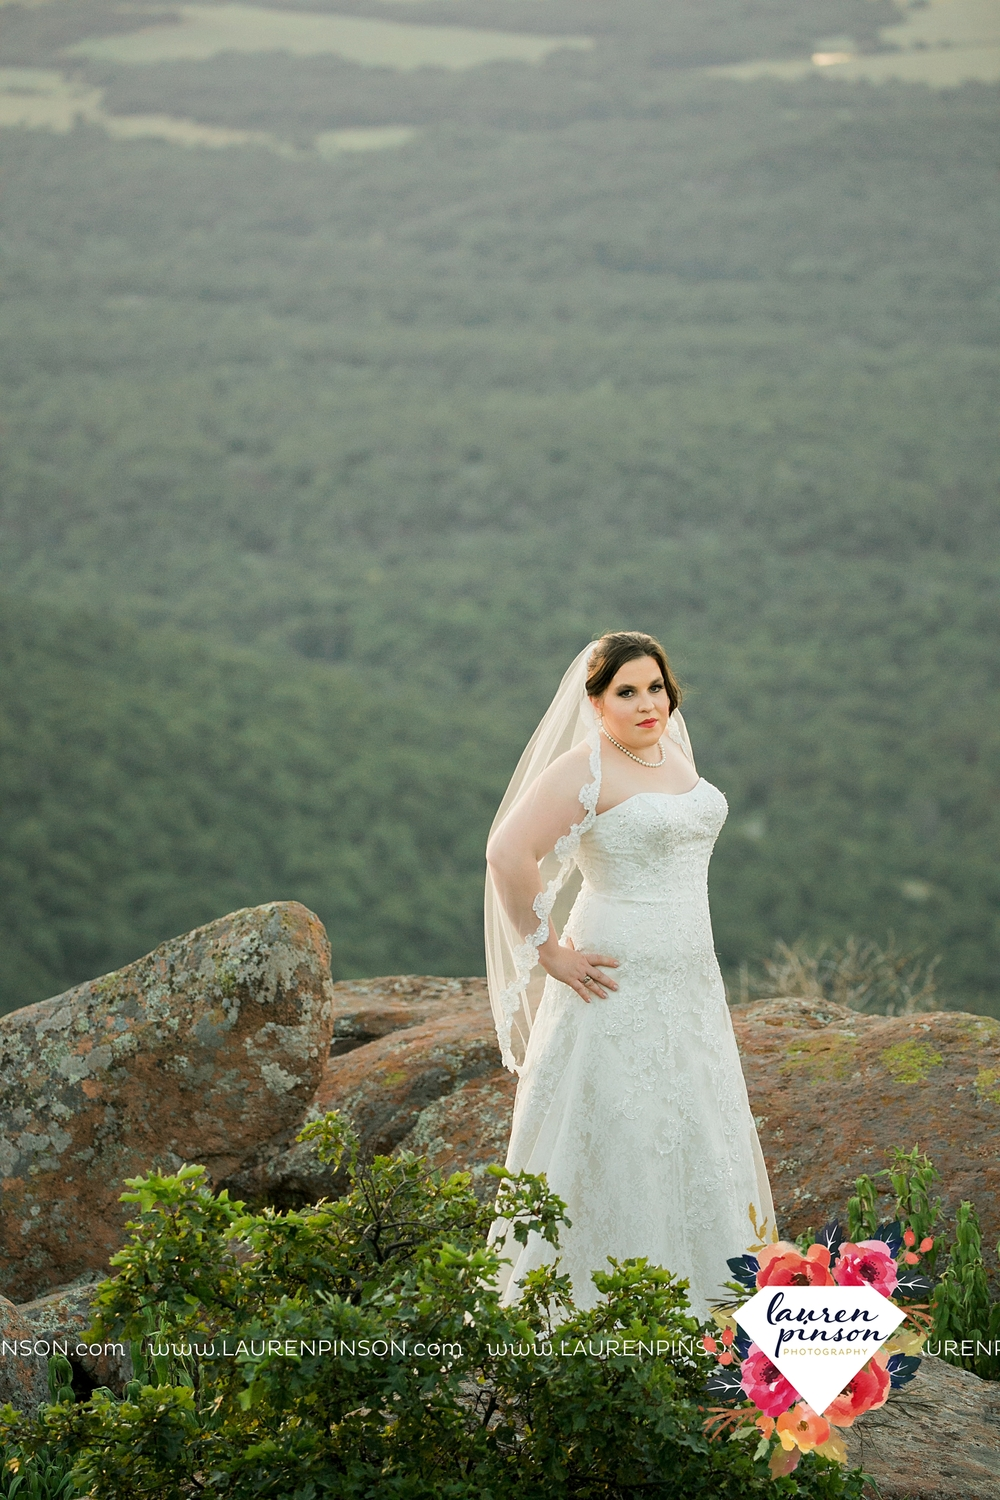 wichita-falls-texas-walters-lawton-oklahoma-wedding-photographer-wichita-mountains-bridal-portraits_3176.jpg